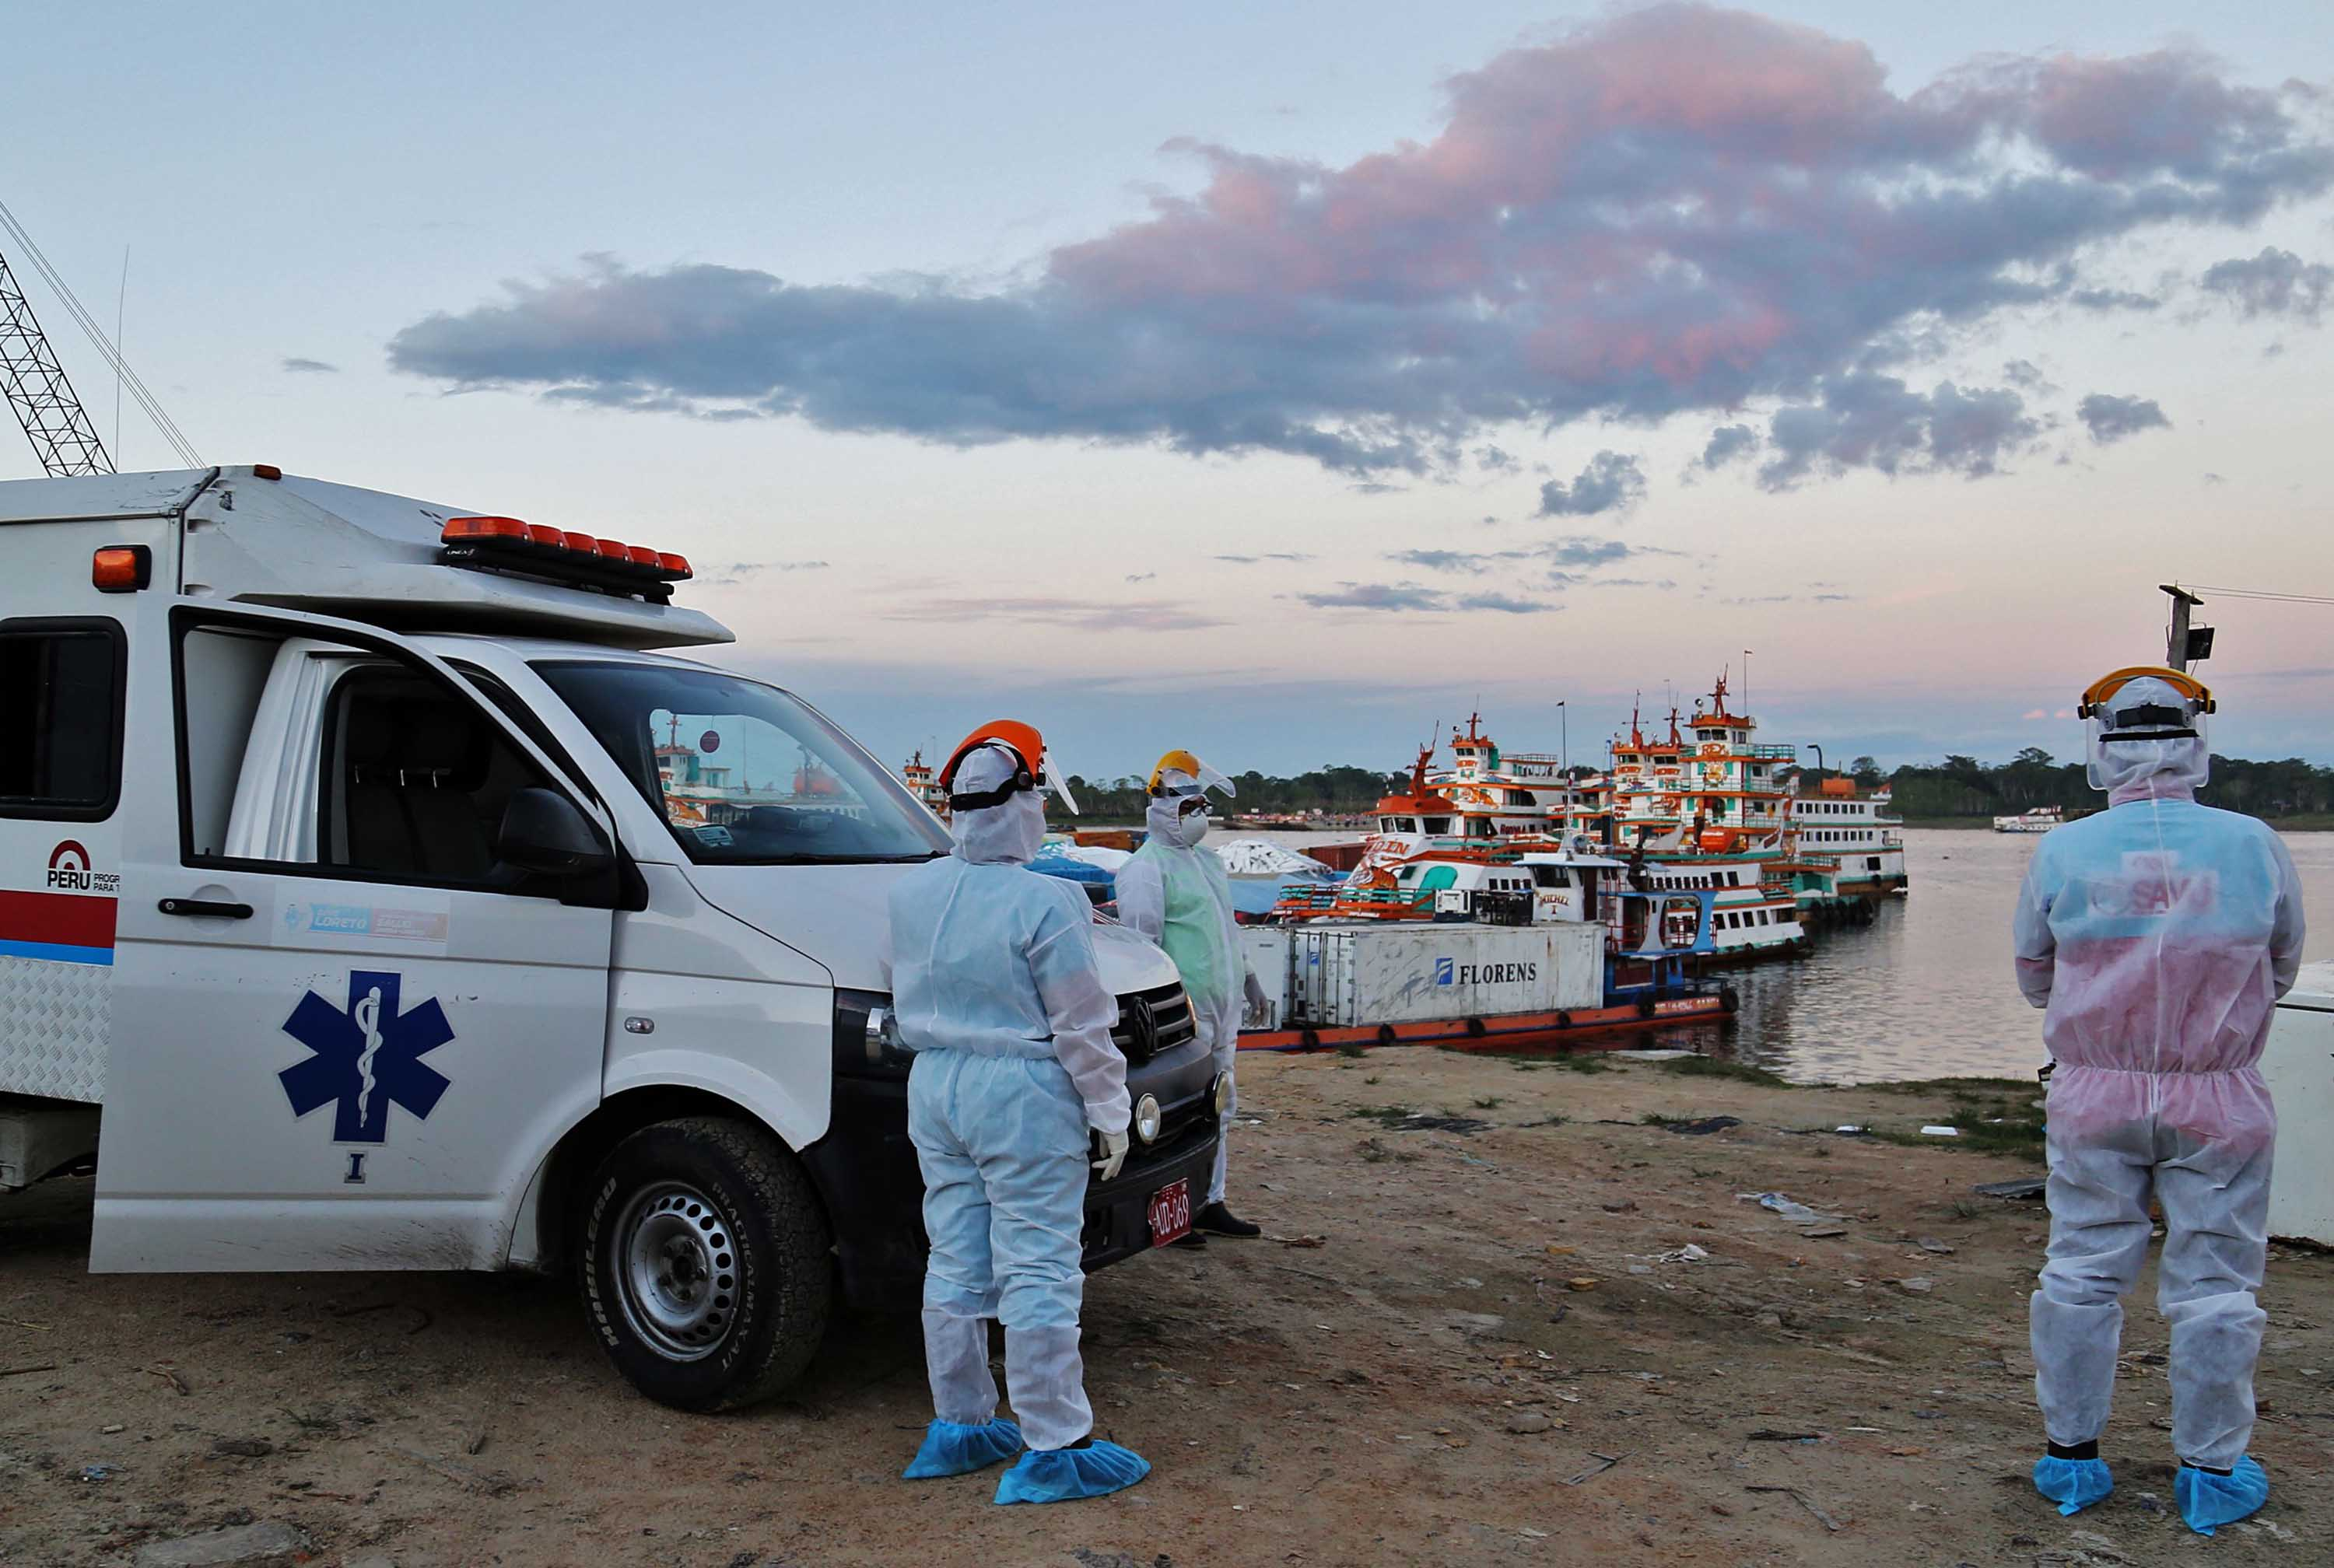 Medical staff wait at a port to transfer COVID-19 patients brought from nearby communities in Iquitos, Peru, on June 18.